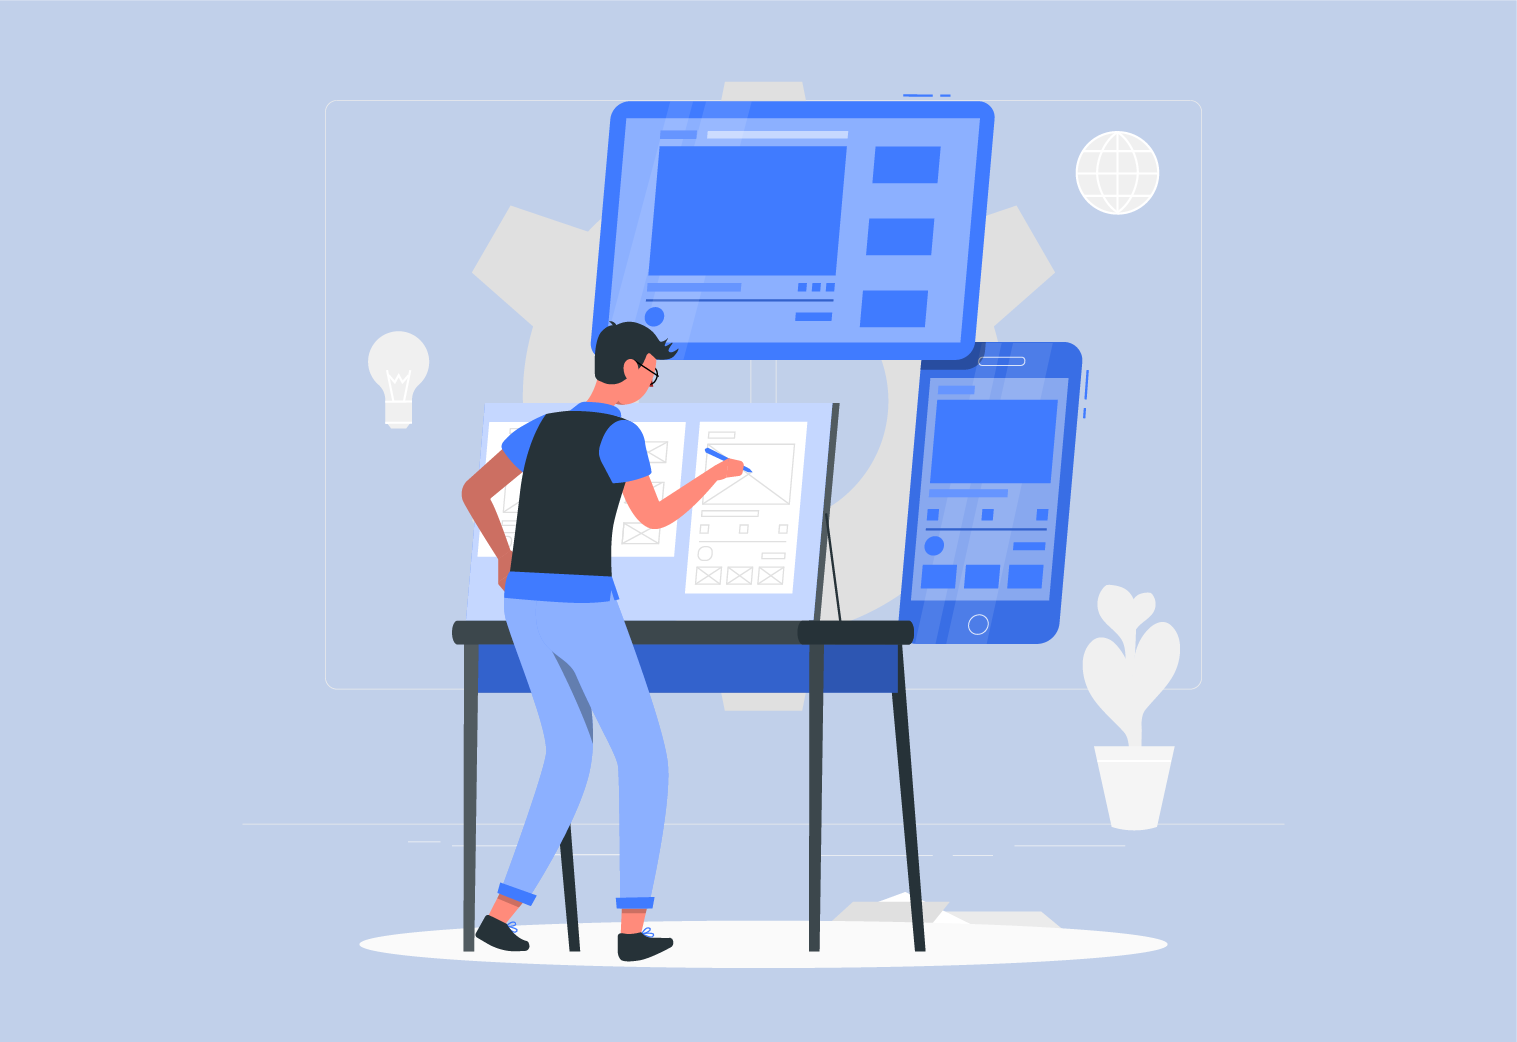 What is UI and UX in e-learning?